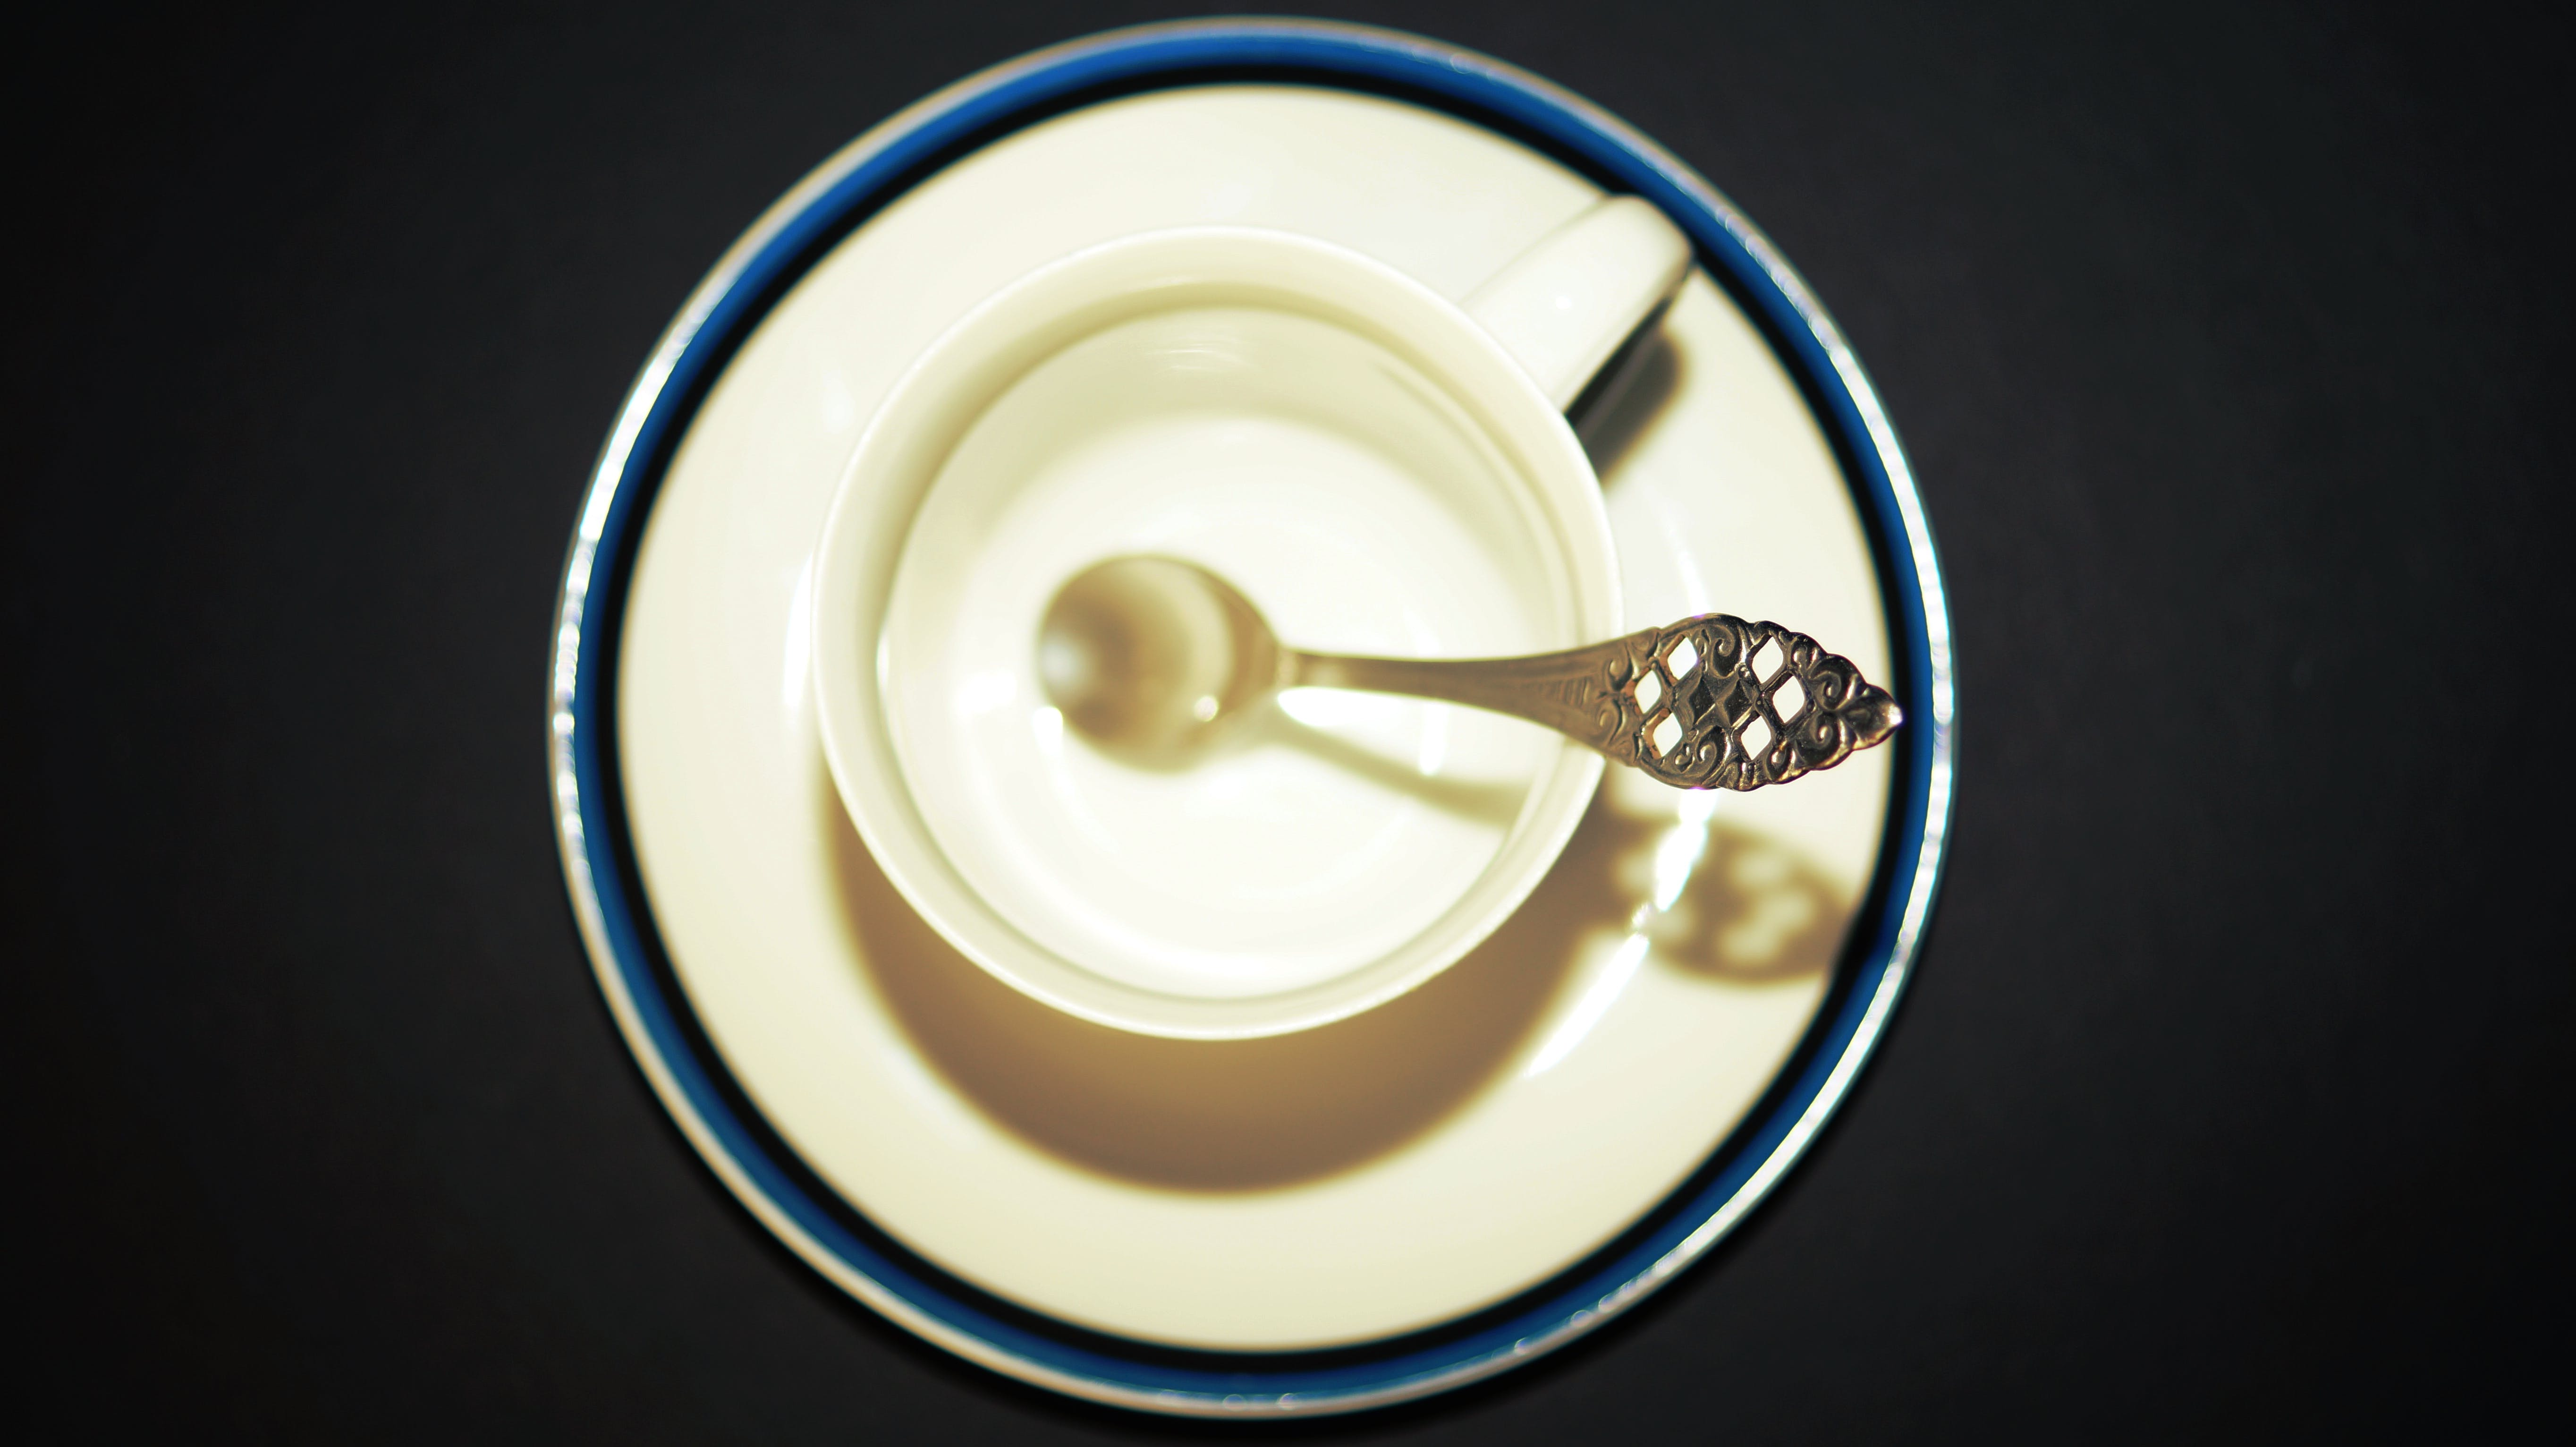 Silver-colored Spoon Inside White Teacup